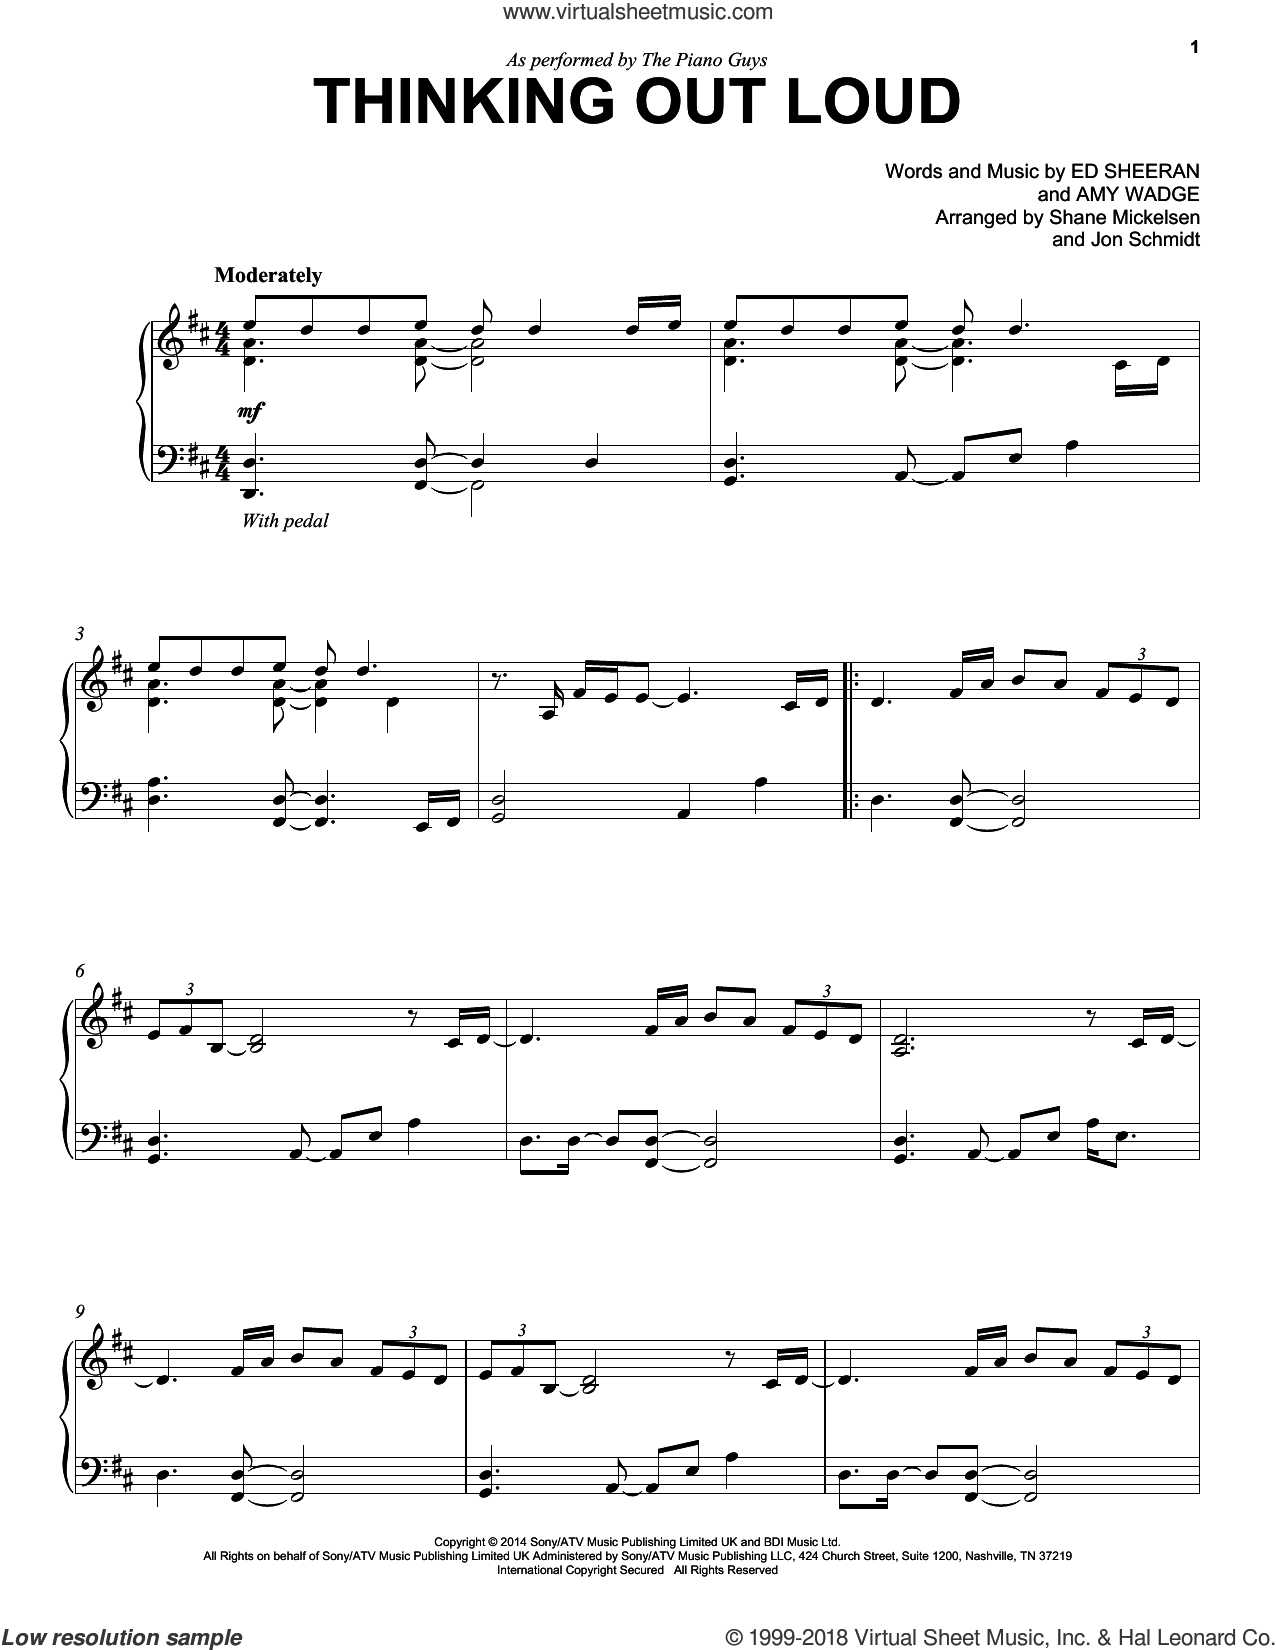 Thinking Out Loud sheet music for cello and piano by The Piano Guys, Amy Wadge and Ed Sheeran, wedding score, intermediate